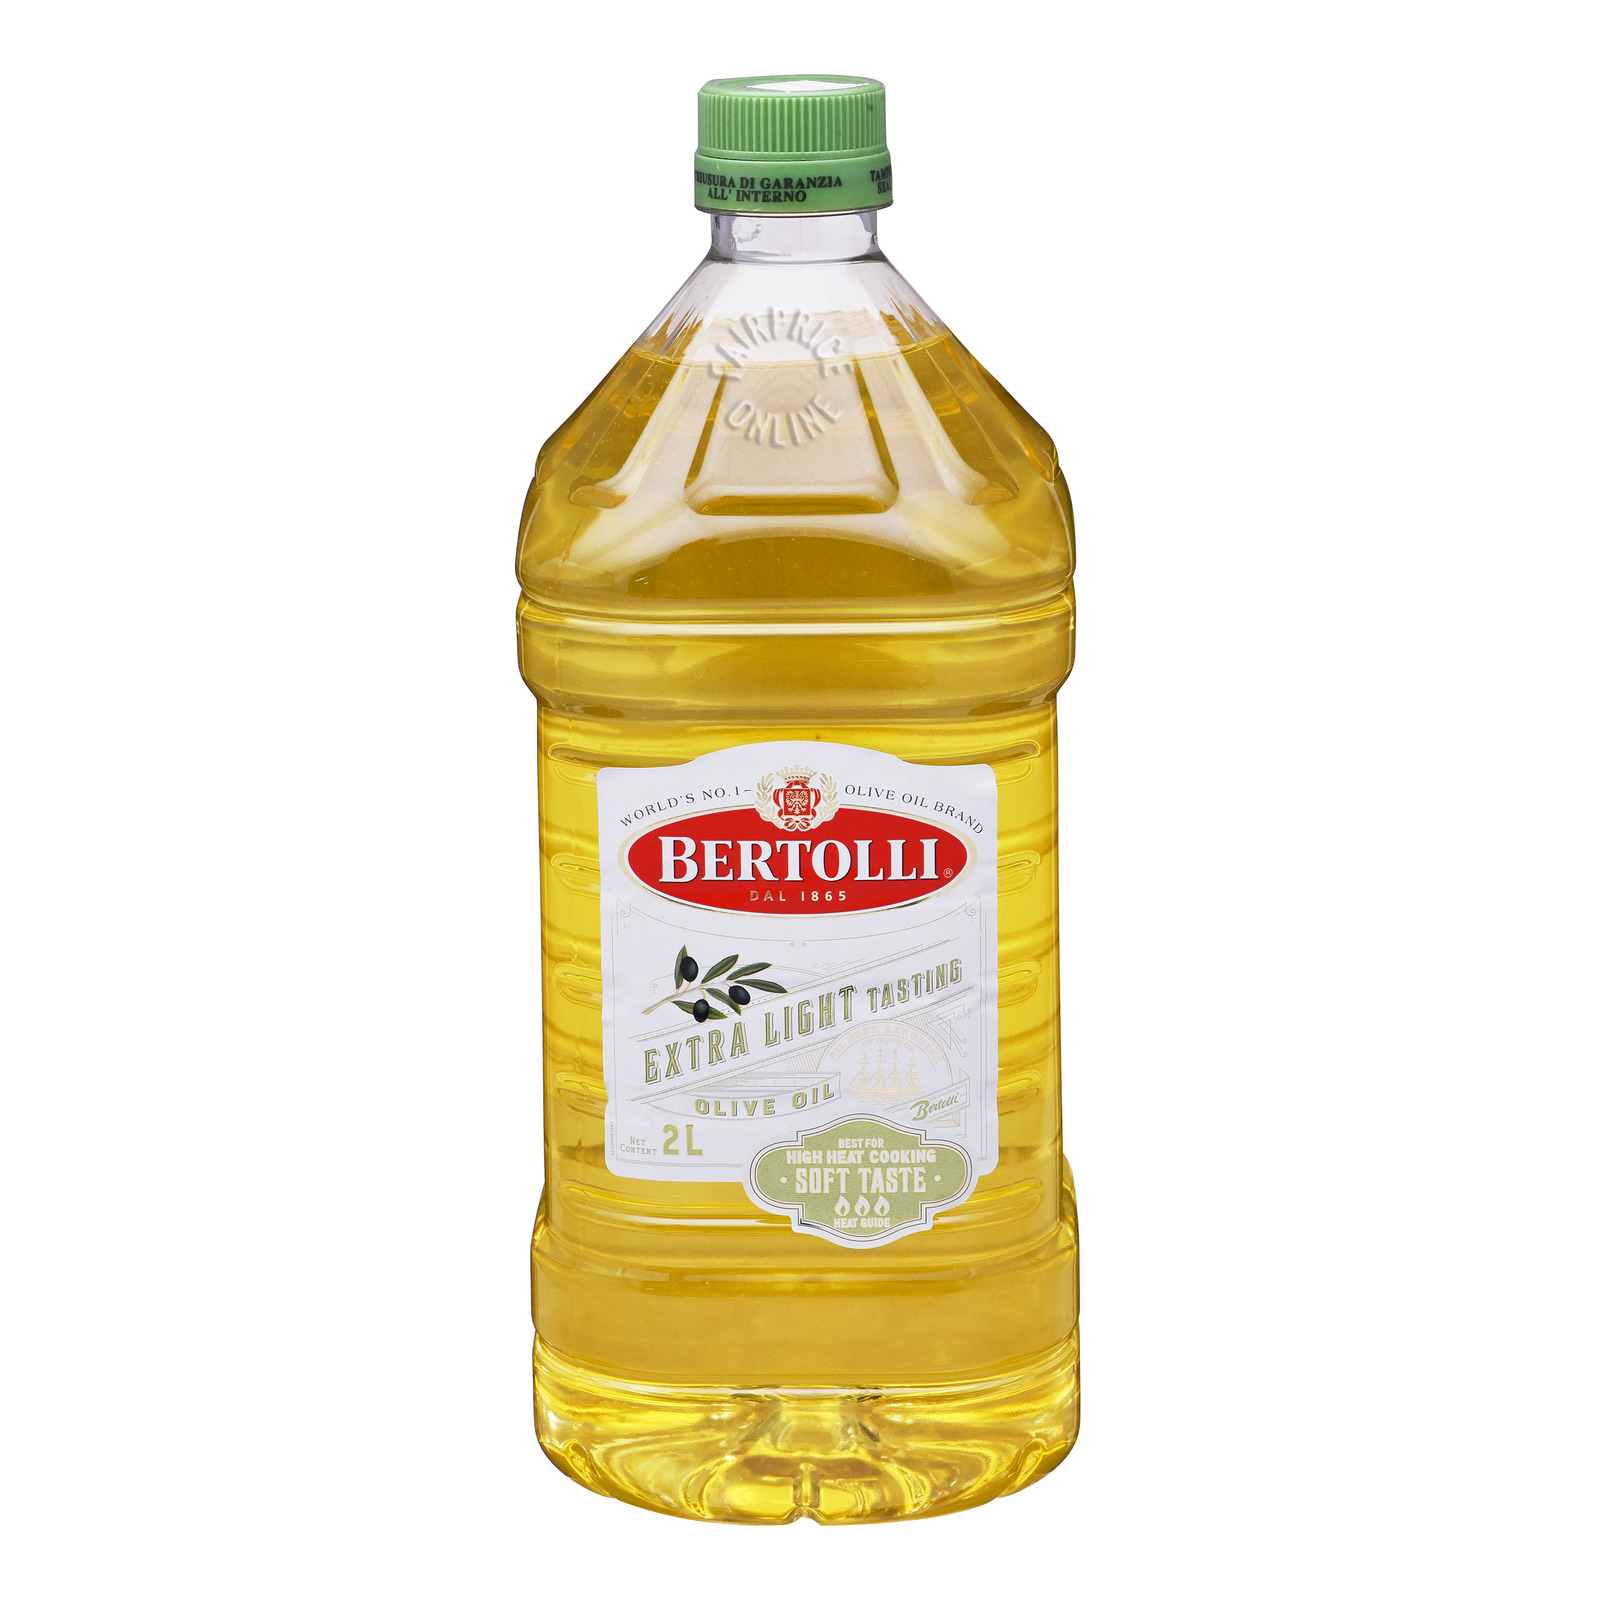 Bertolli Olive Oil - Extra Light